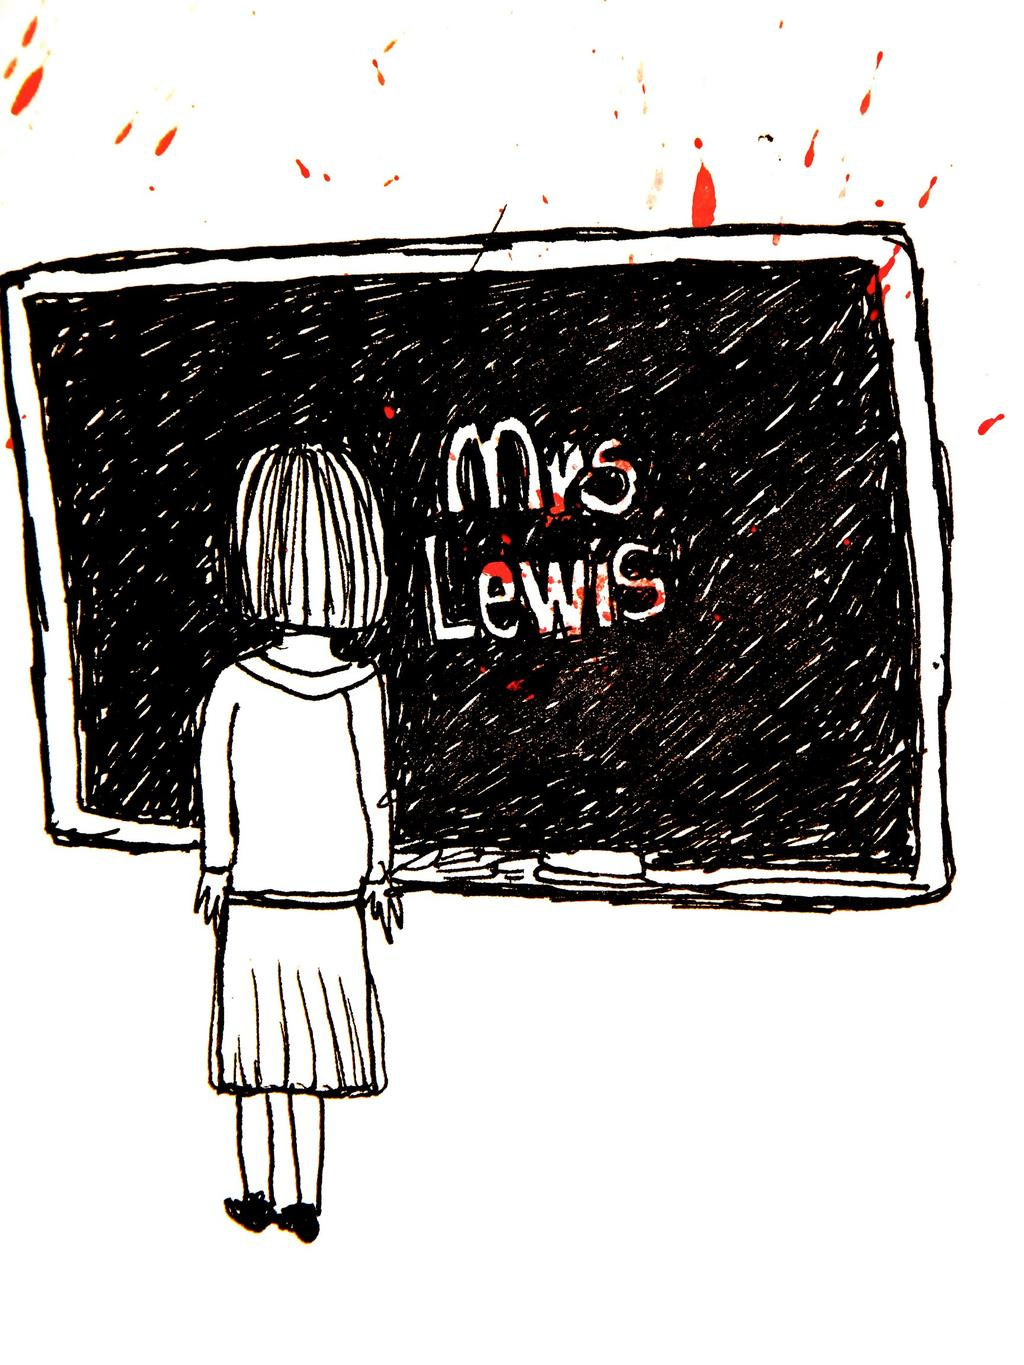 Mrs Lewis by David Mackie The children were fidgety. Shaken-up bottles of coke ready to hiss and blow their tops.